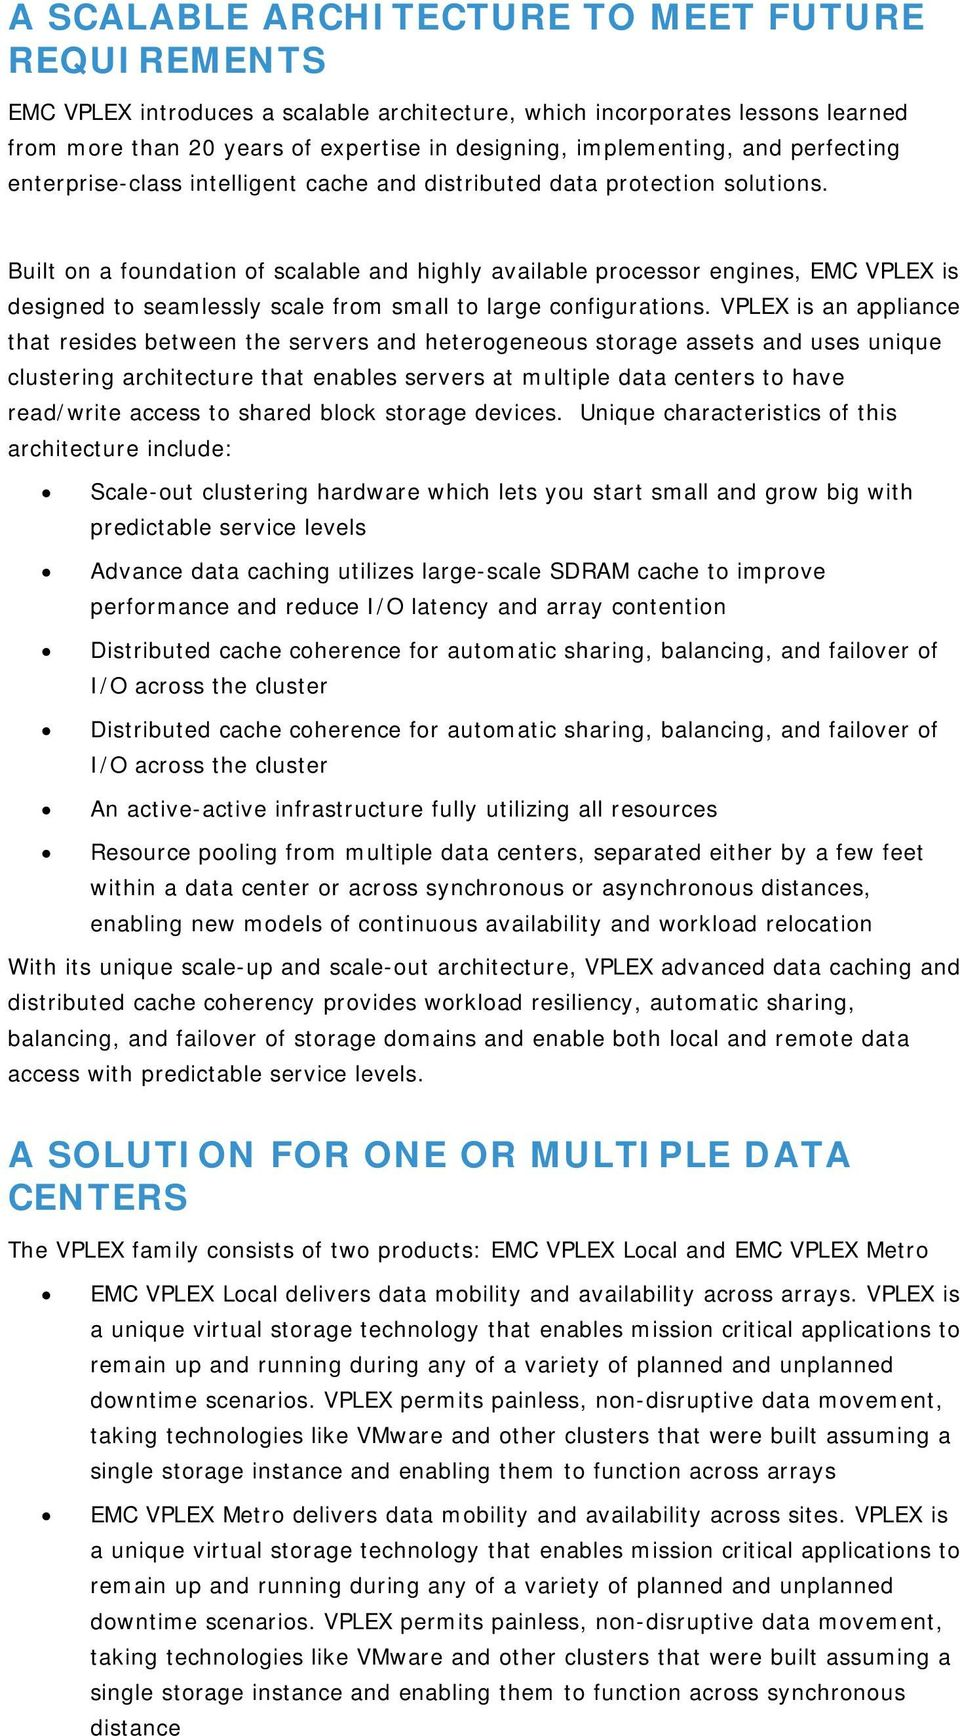 Built on a foundation of scalable and highly available processor engines, EMC VPLEX is designed to seamlessly scale from small to large configurations.